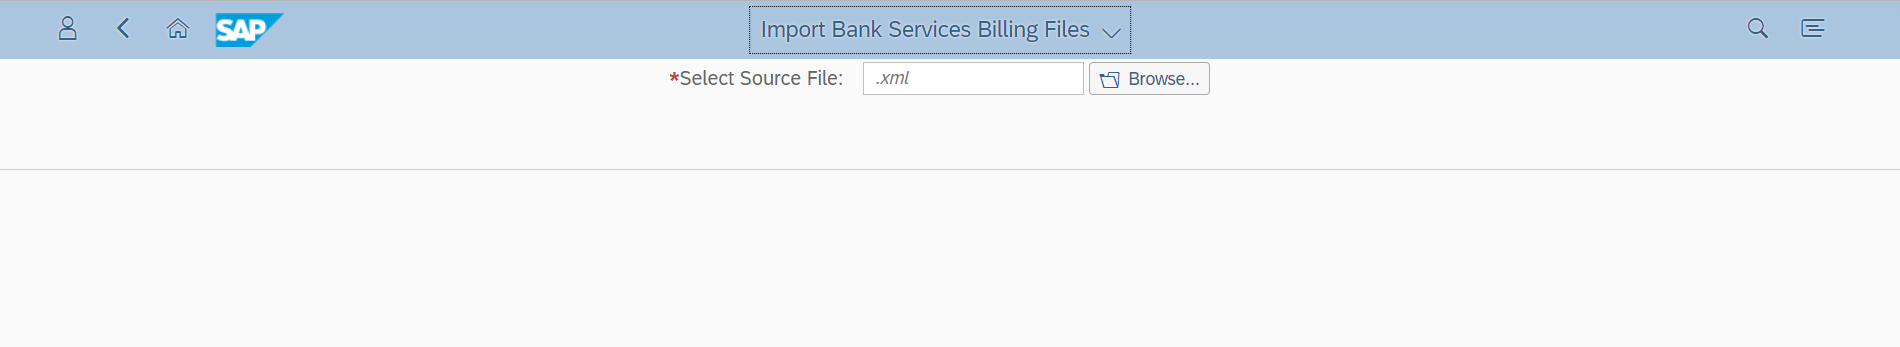 Import Bank Services Billing Files